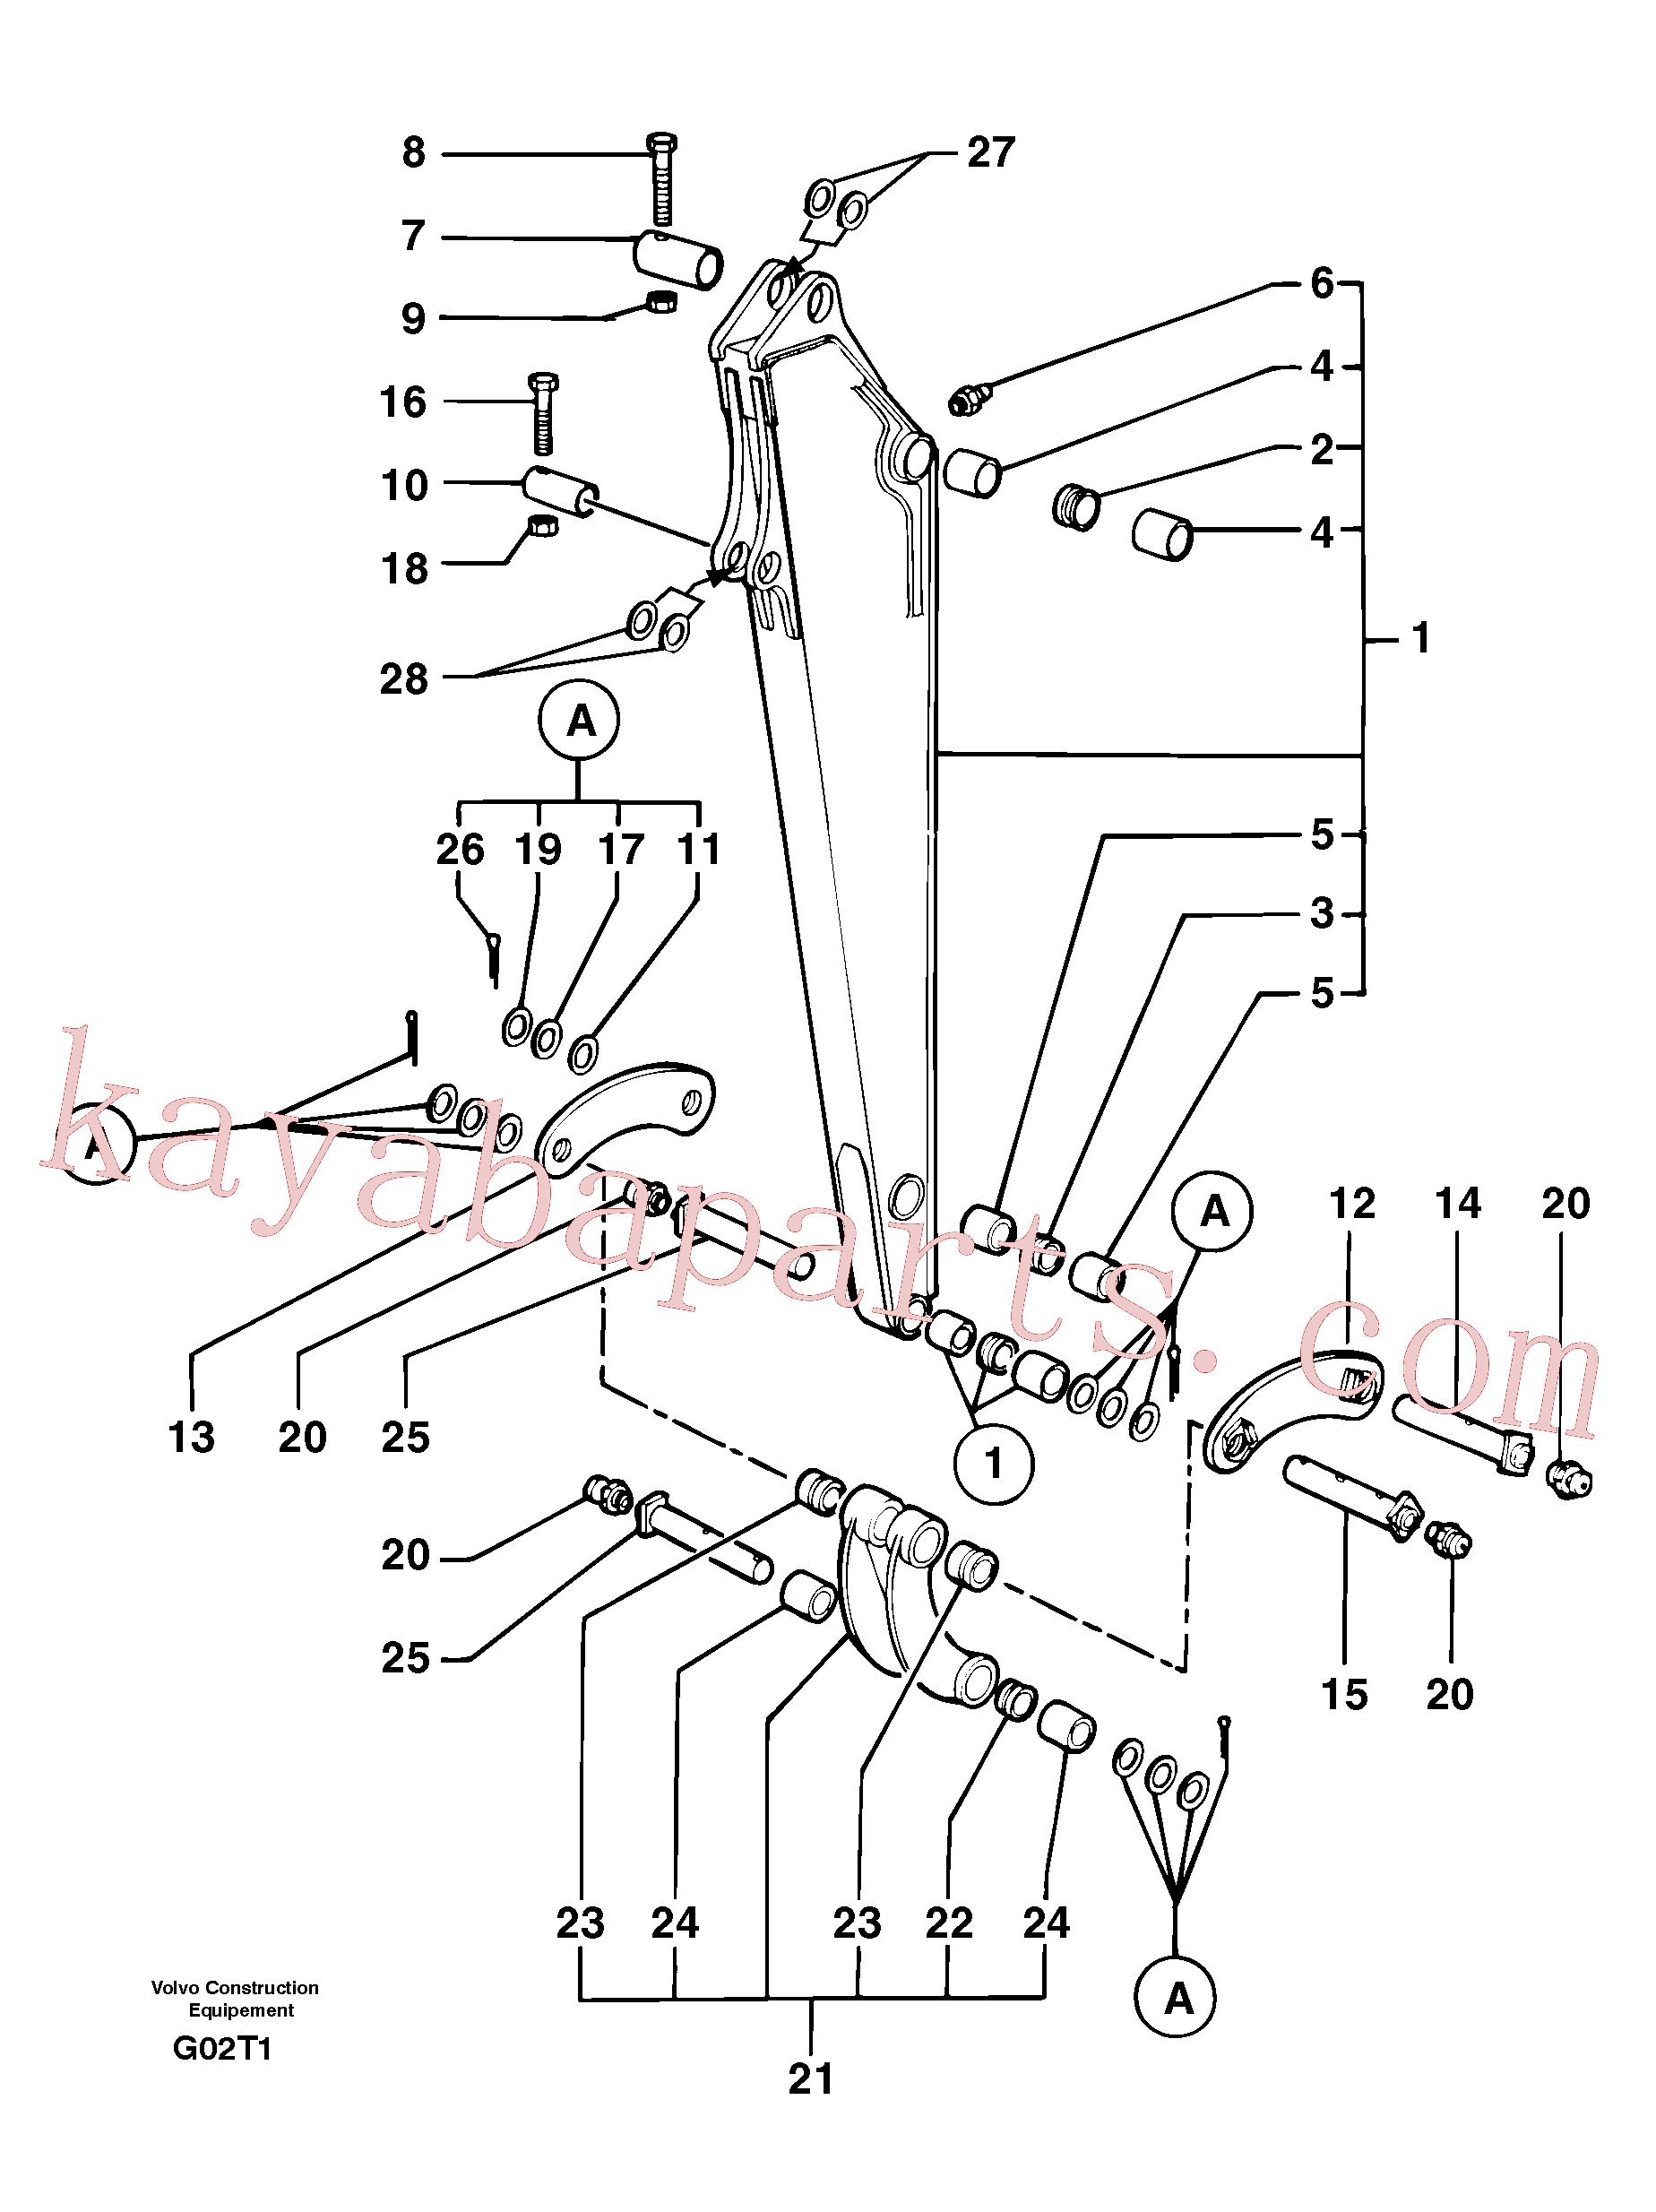 PJ4550065 for Volvo Dipper arm(G02T1 assembly)